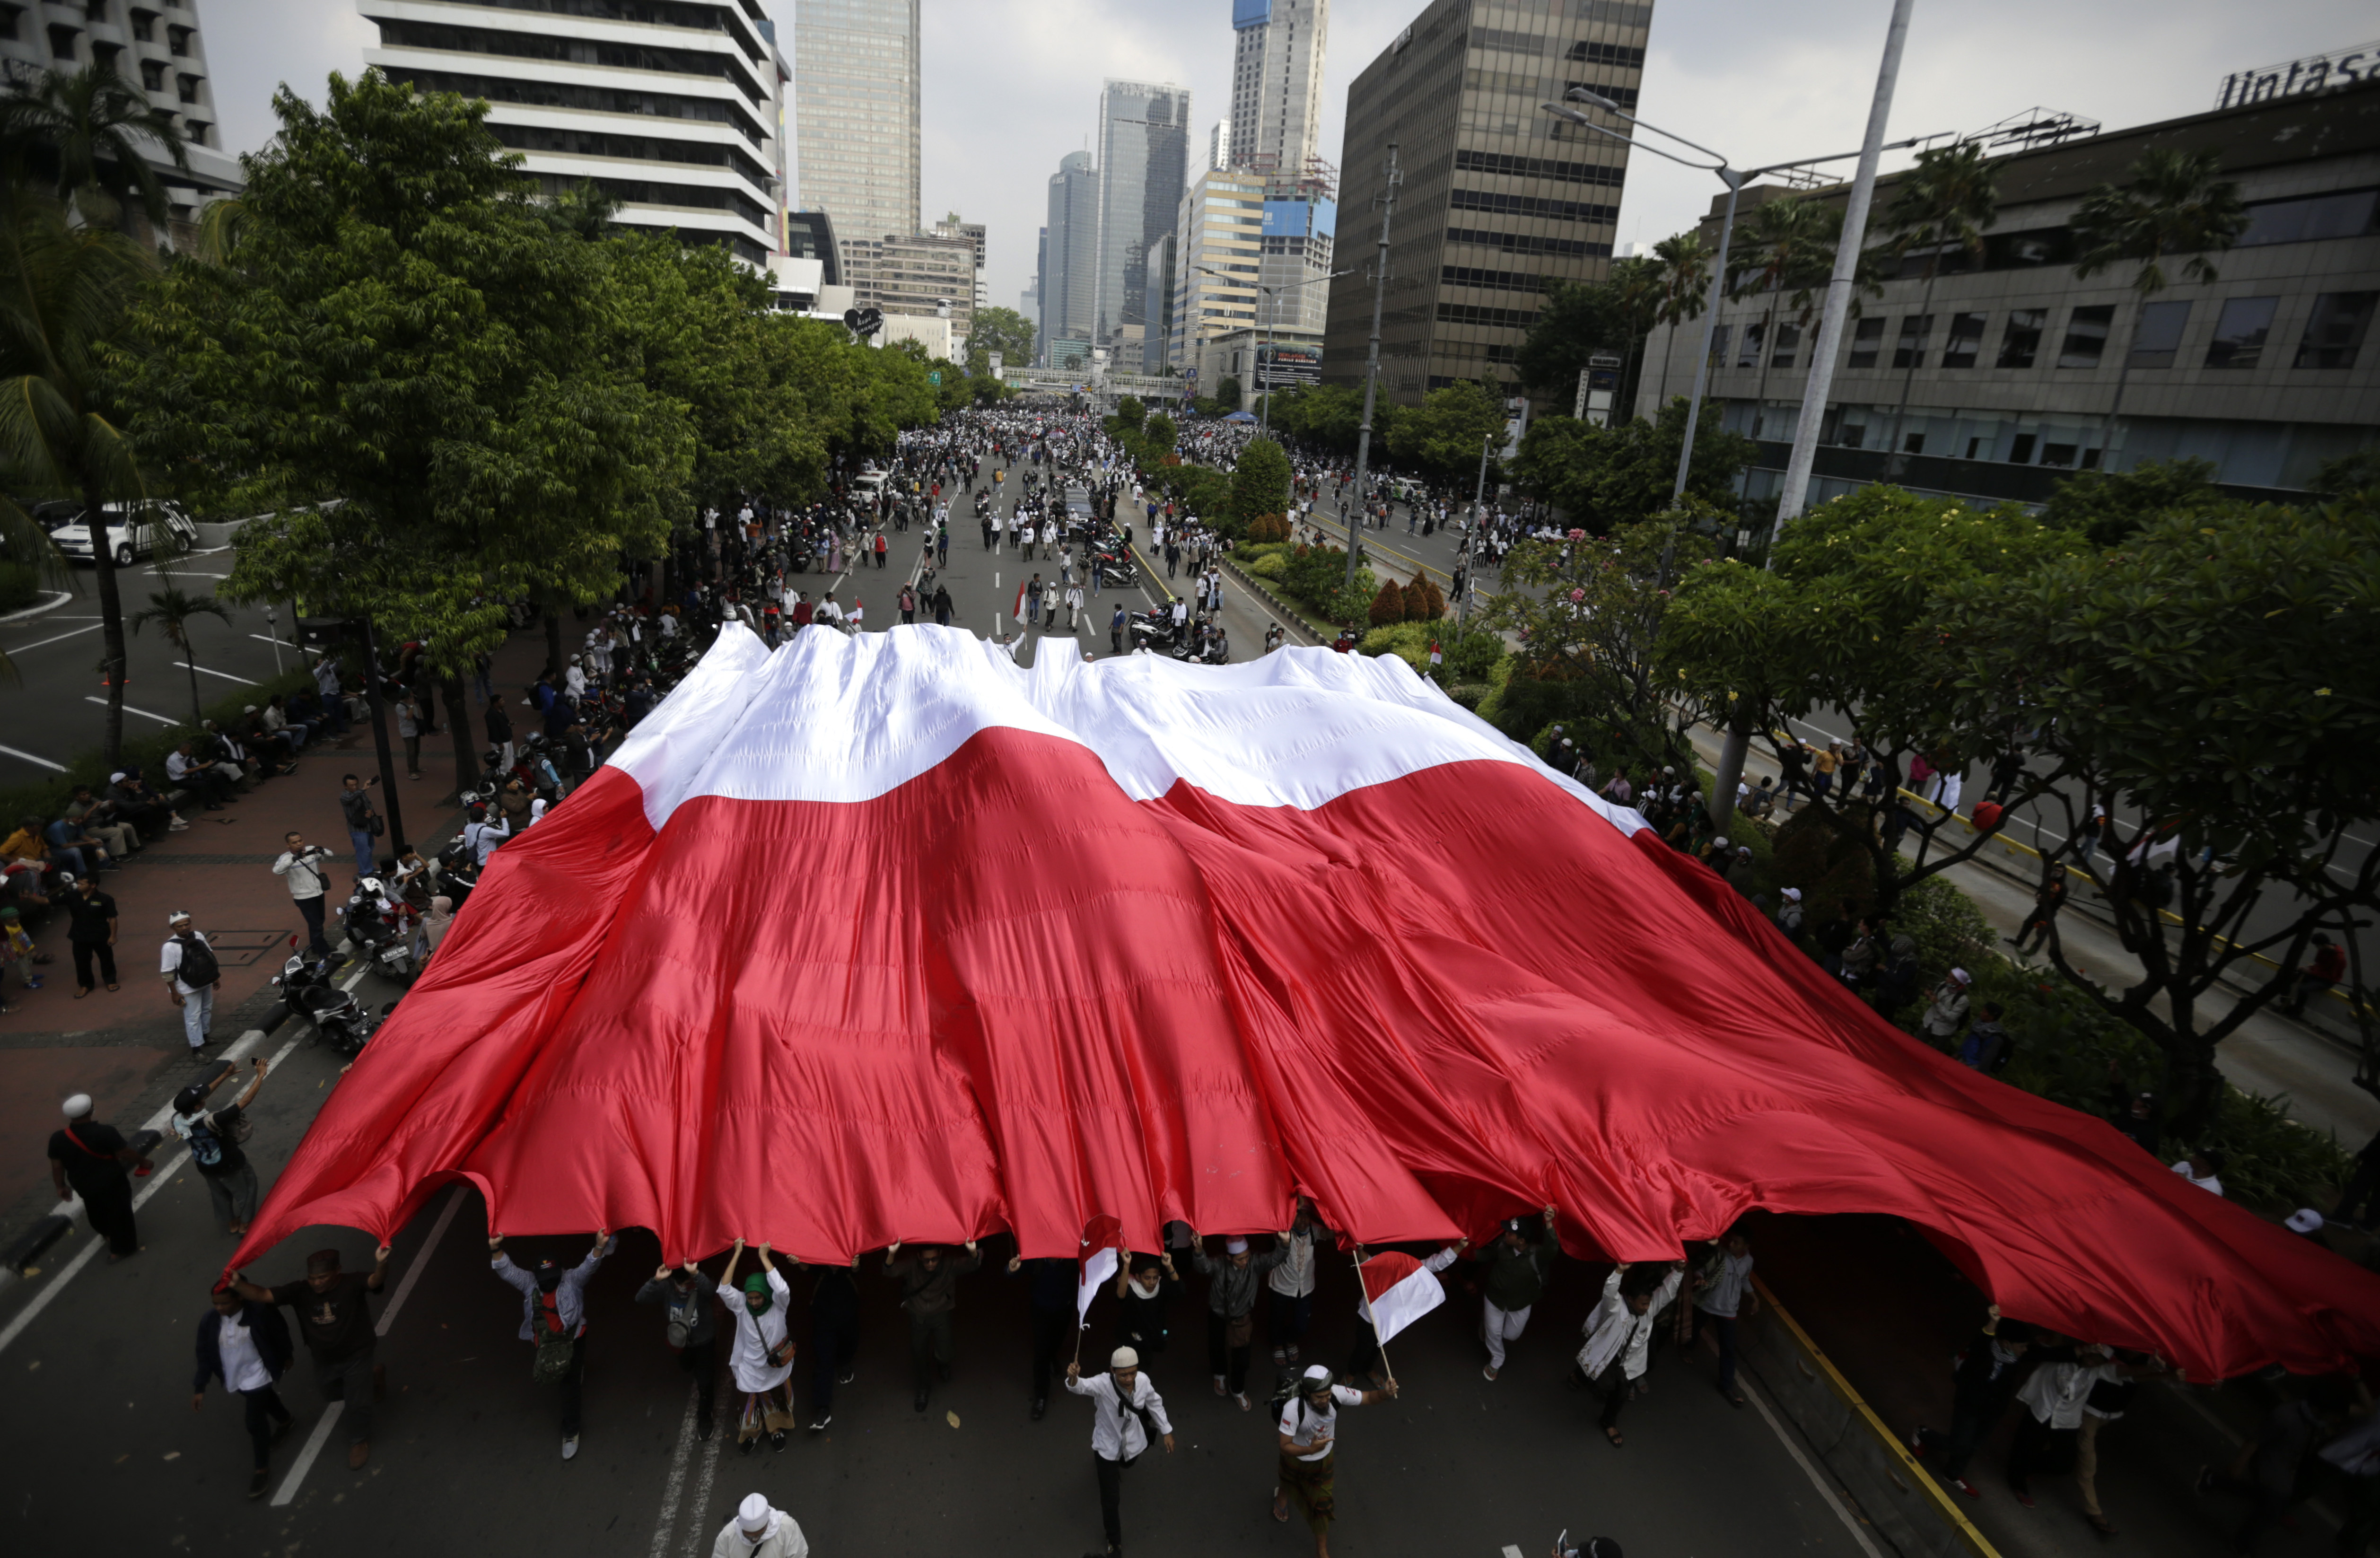 Supporters of Indonesian presidential candidate Prabowo Subianto display a large national Red-White flag during a protest in Jakarta, Indonesia, May 22, 2019.